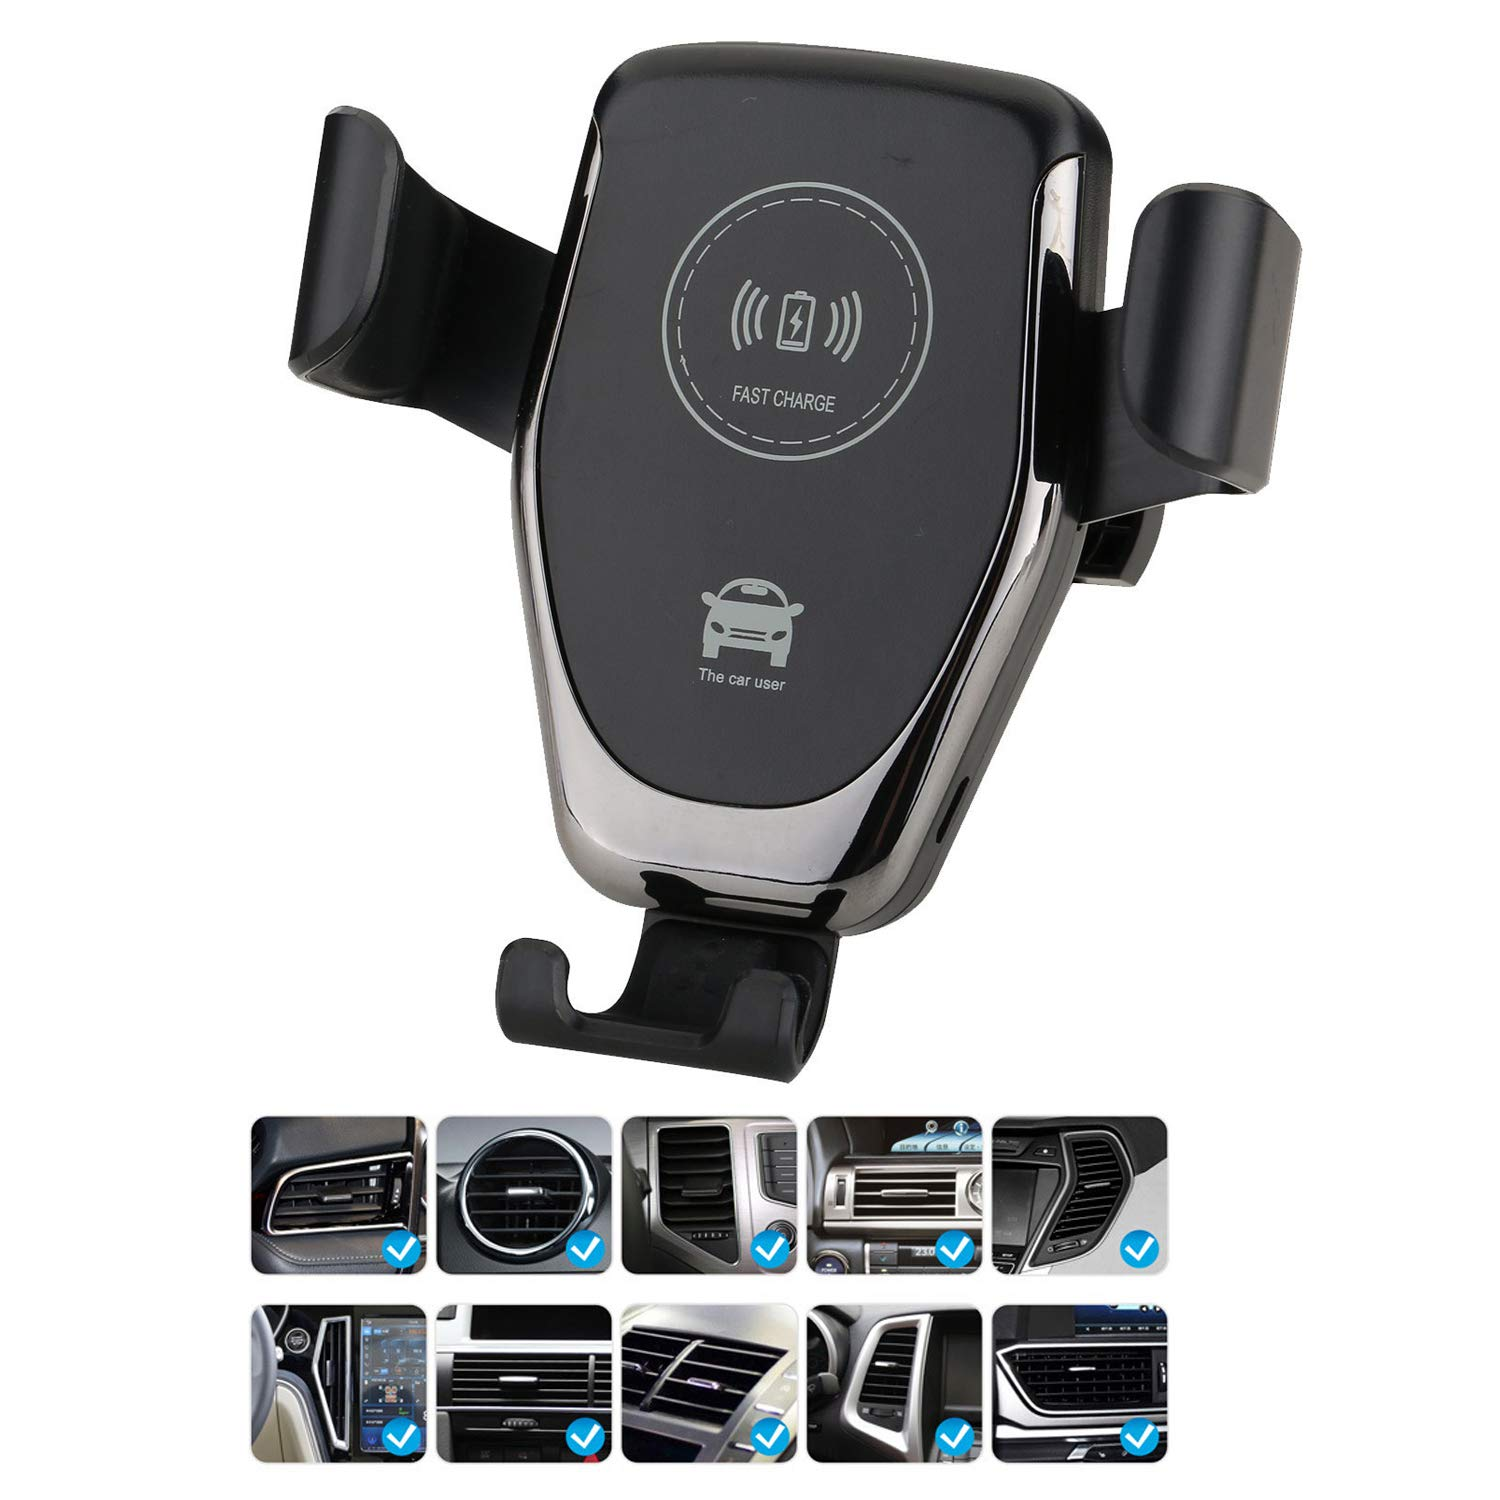 Sysmarts Qi Wireless Car Charger 10W Quick Charger for Samsung Galaxy S9//S9+//S8//S8+//S7//Note 8//LG V30 7.5W for Apple iPhone X//8//8 Plus Windshield//Air Vent 2-in-1 Mount Stand